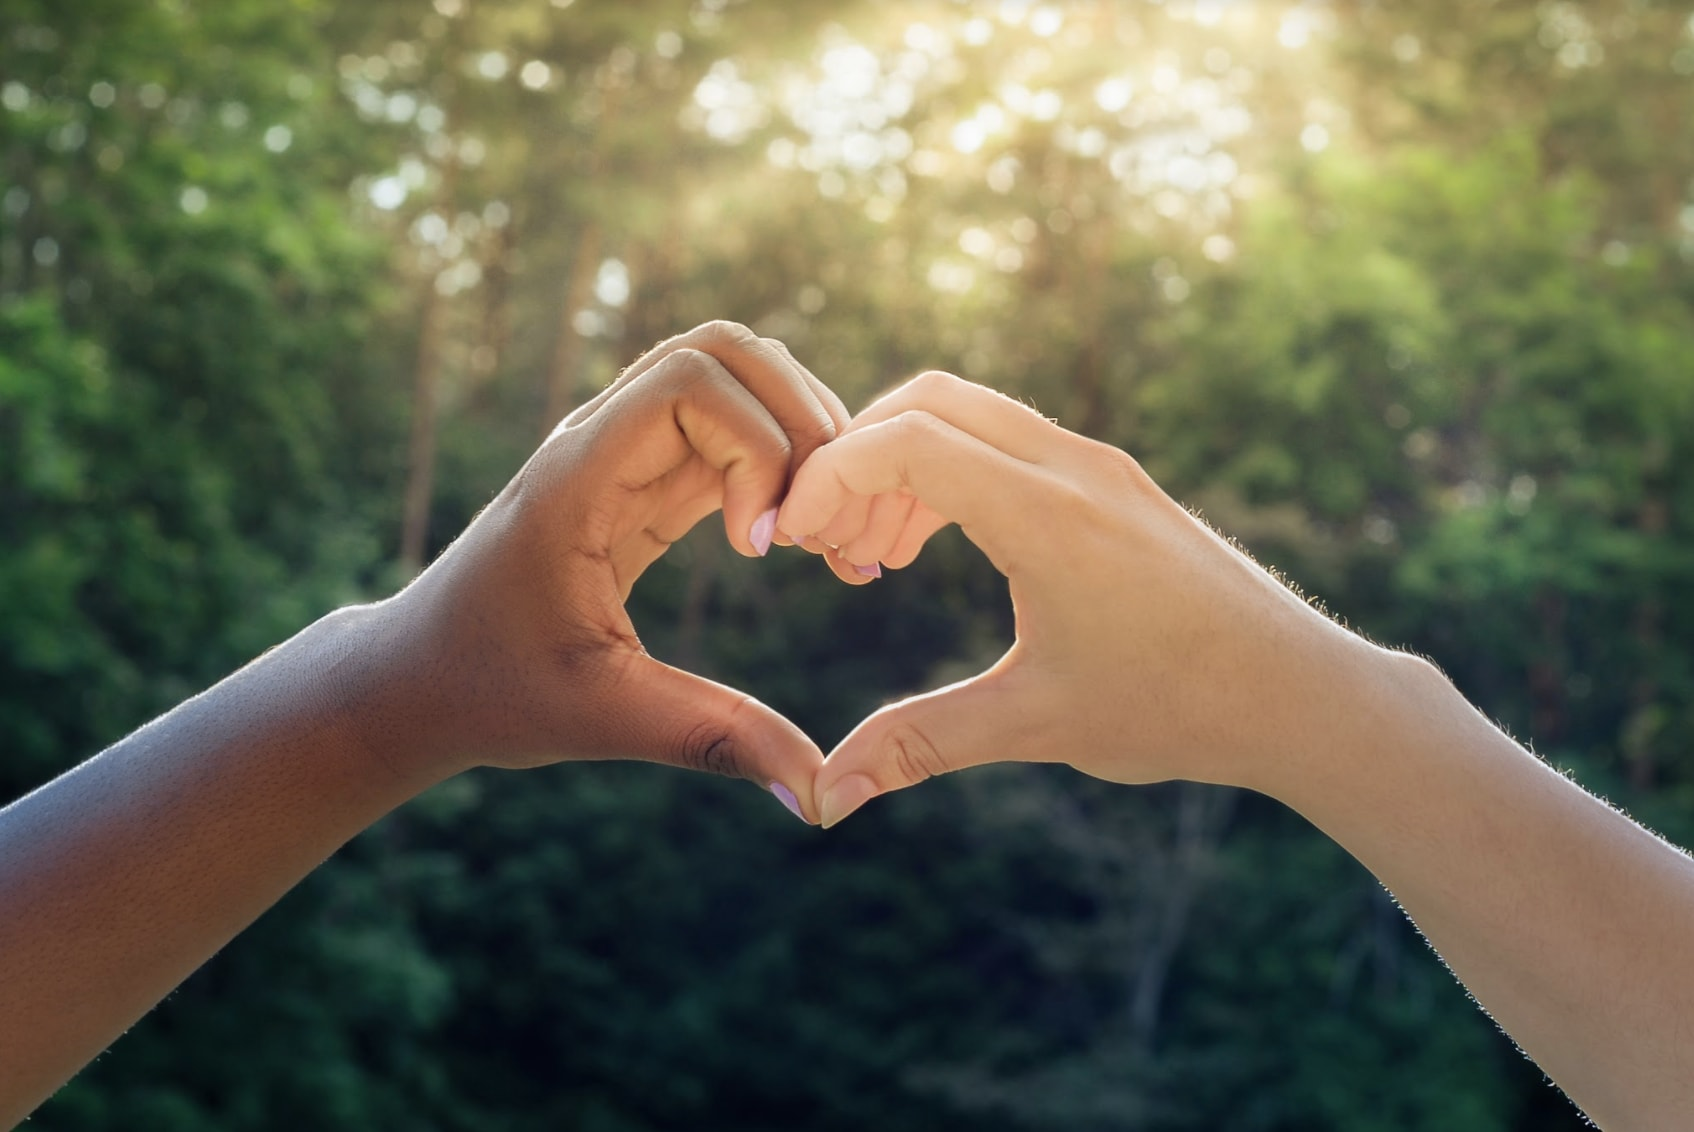 People make a heart shape with their hands.